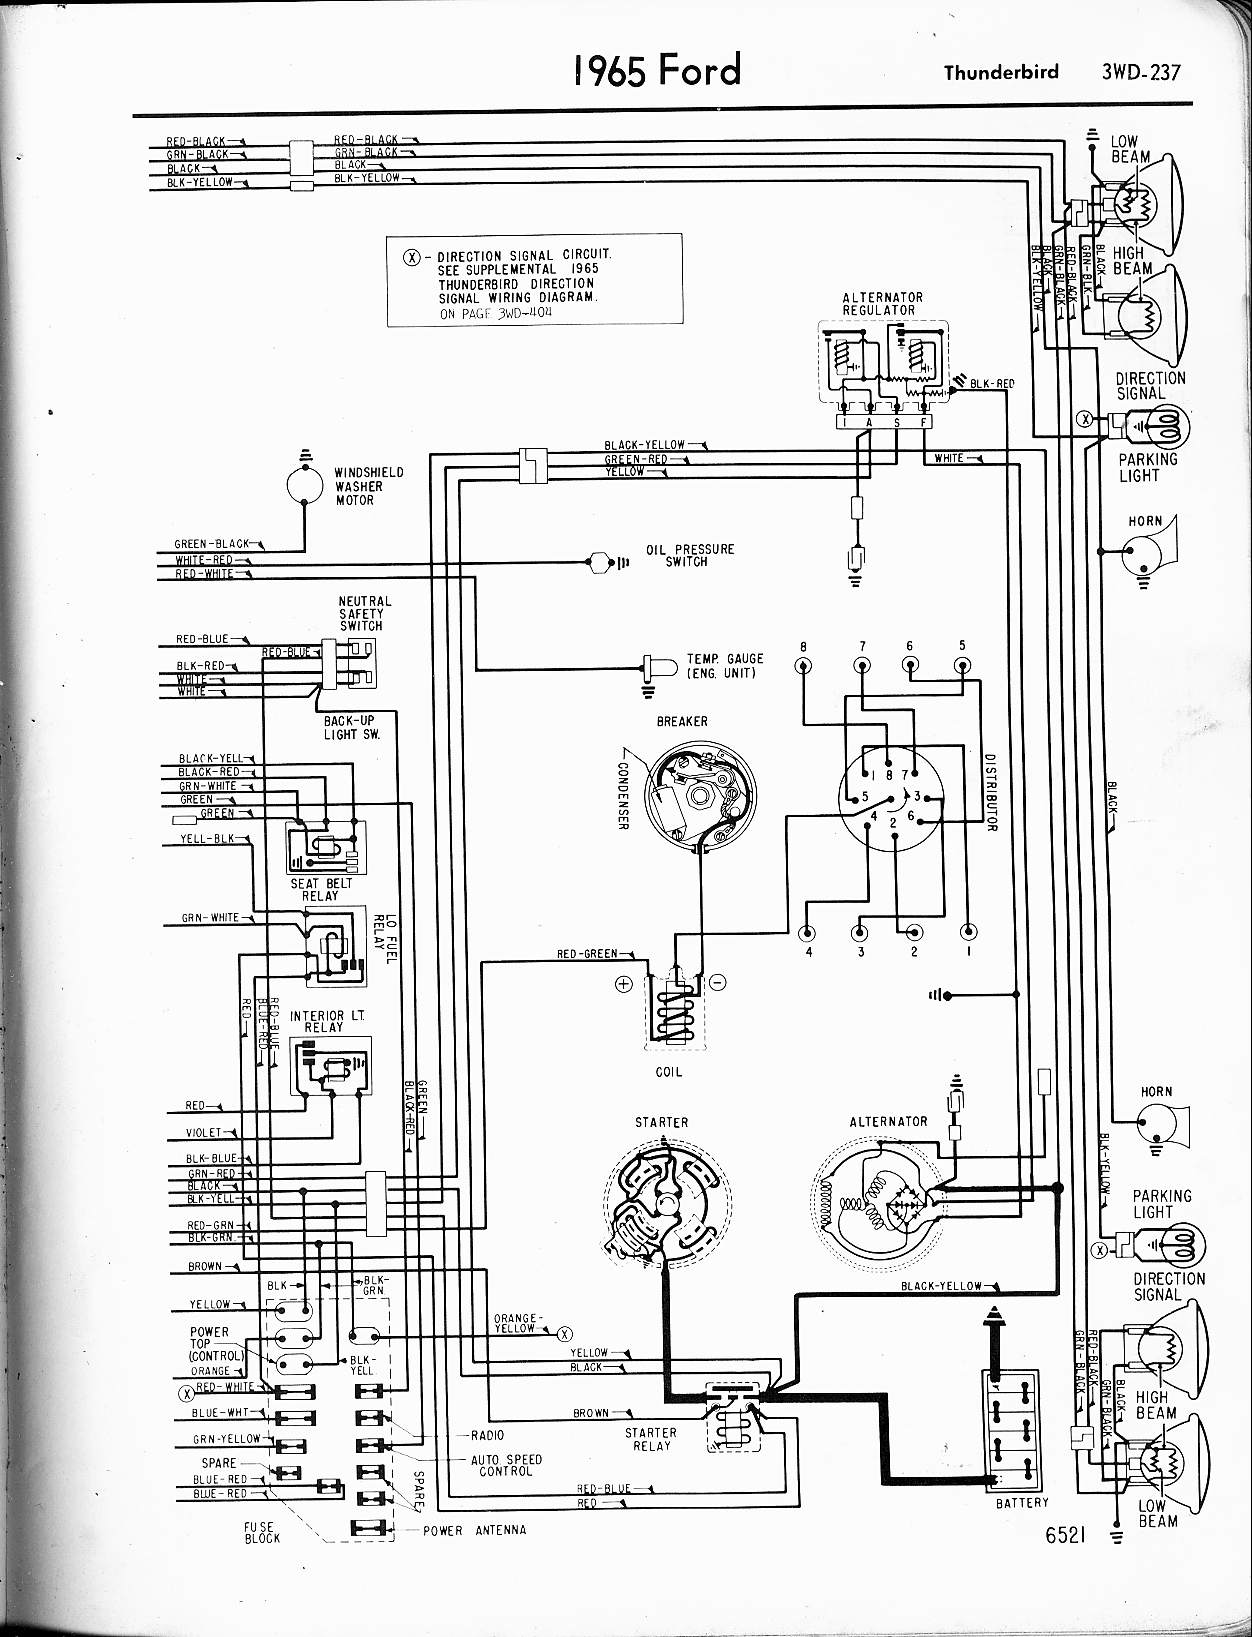 Ford Thunderbird Wiring Diagram Manual E Books 1960 1965 Alternator Image Details1965